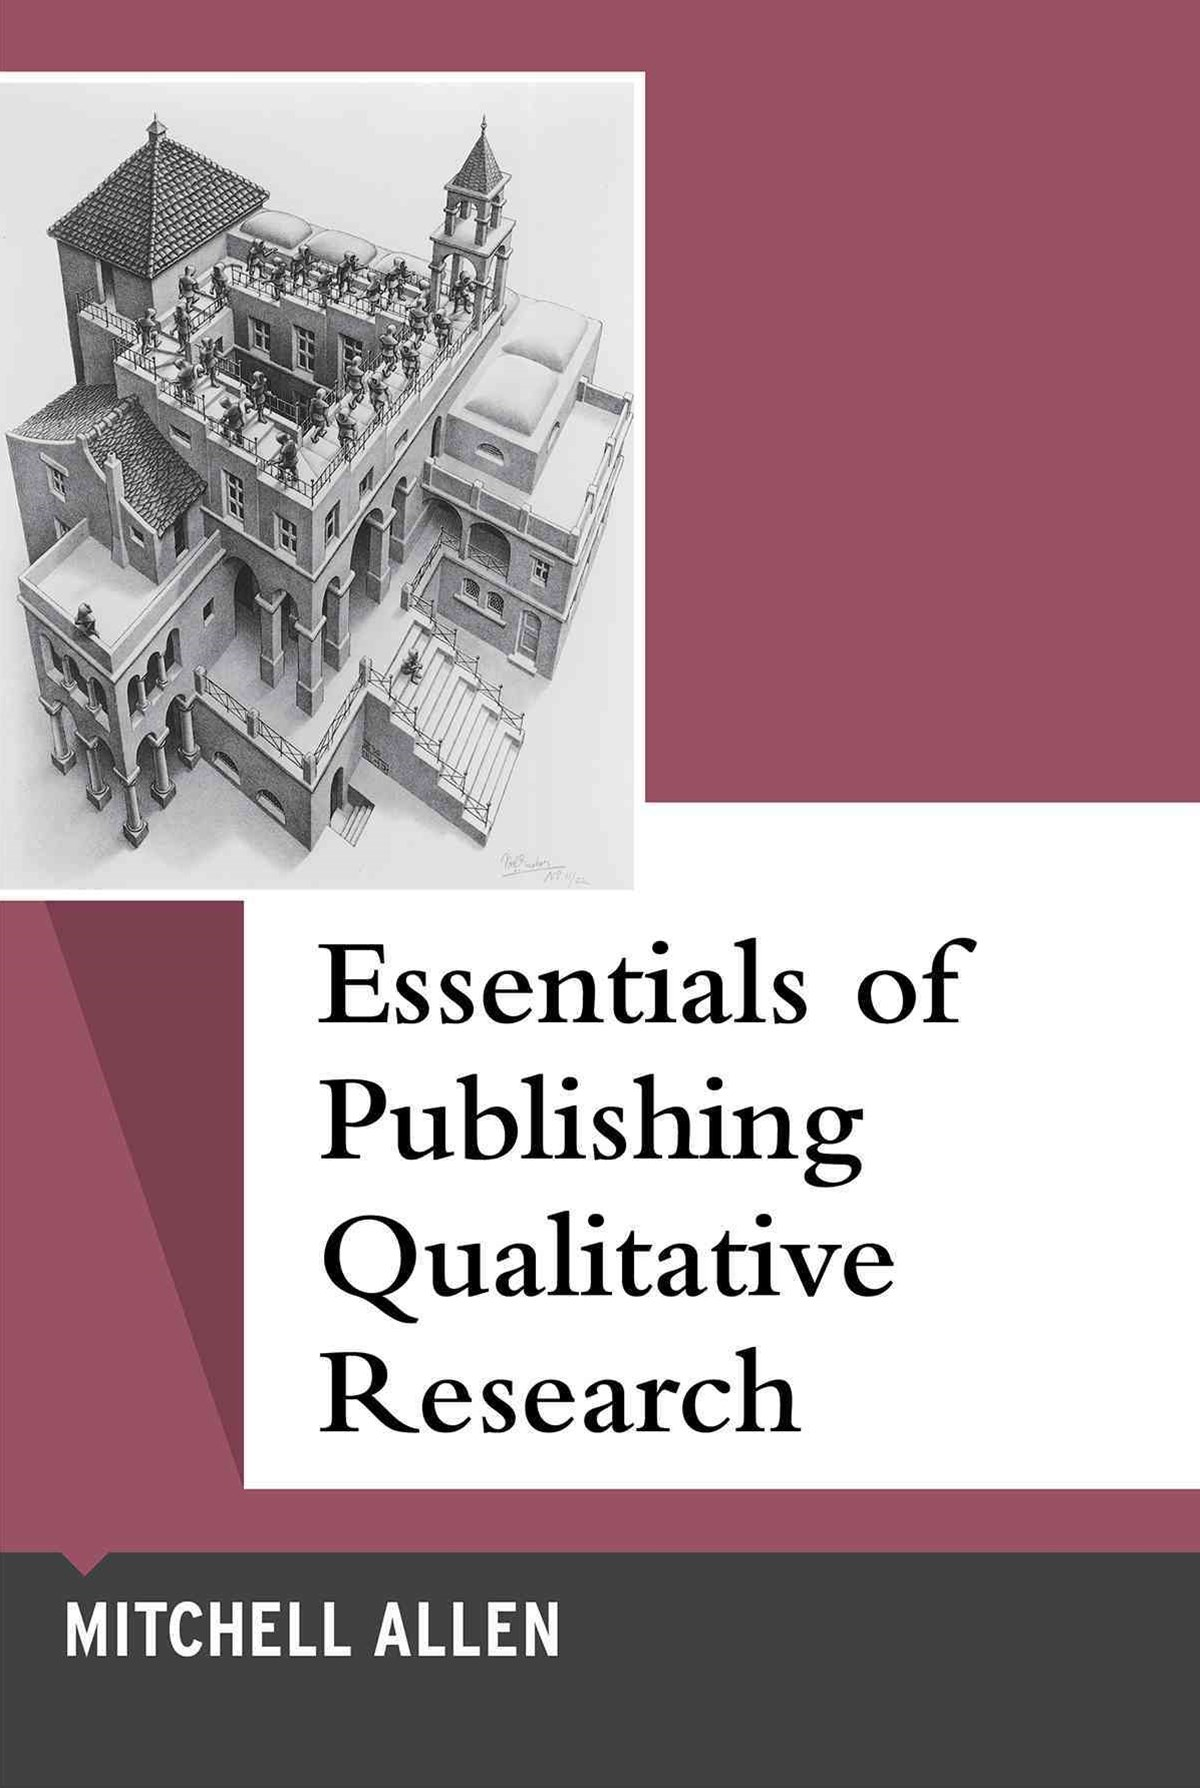 Essentials of Publishing Qualitative Research